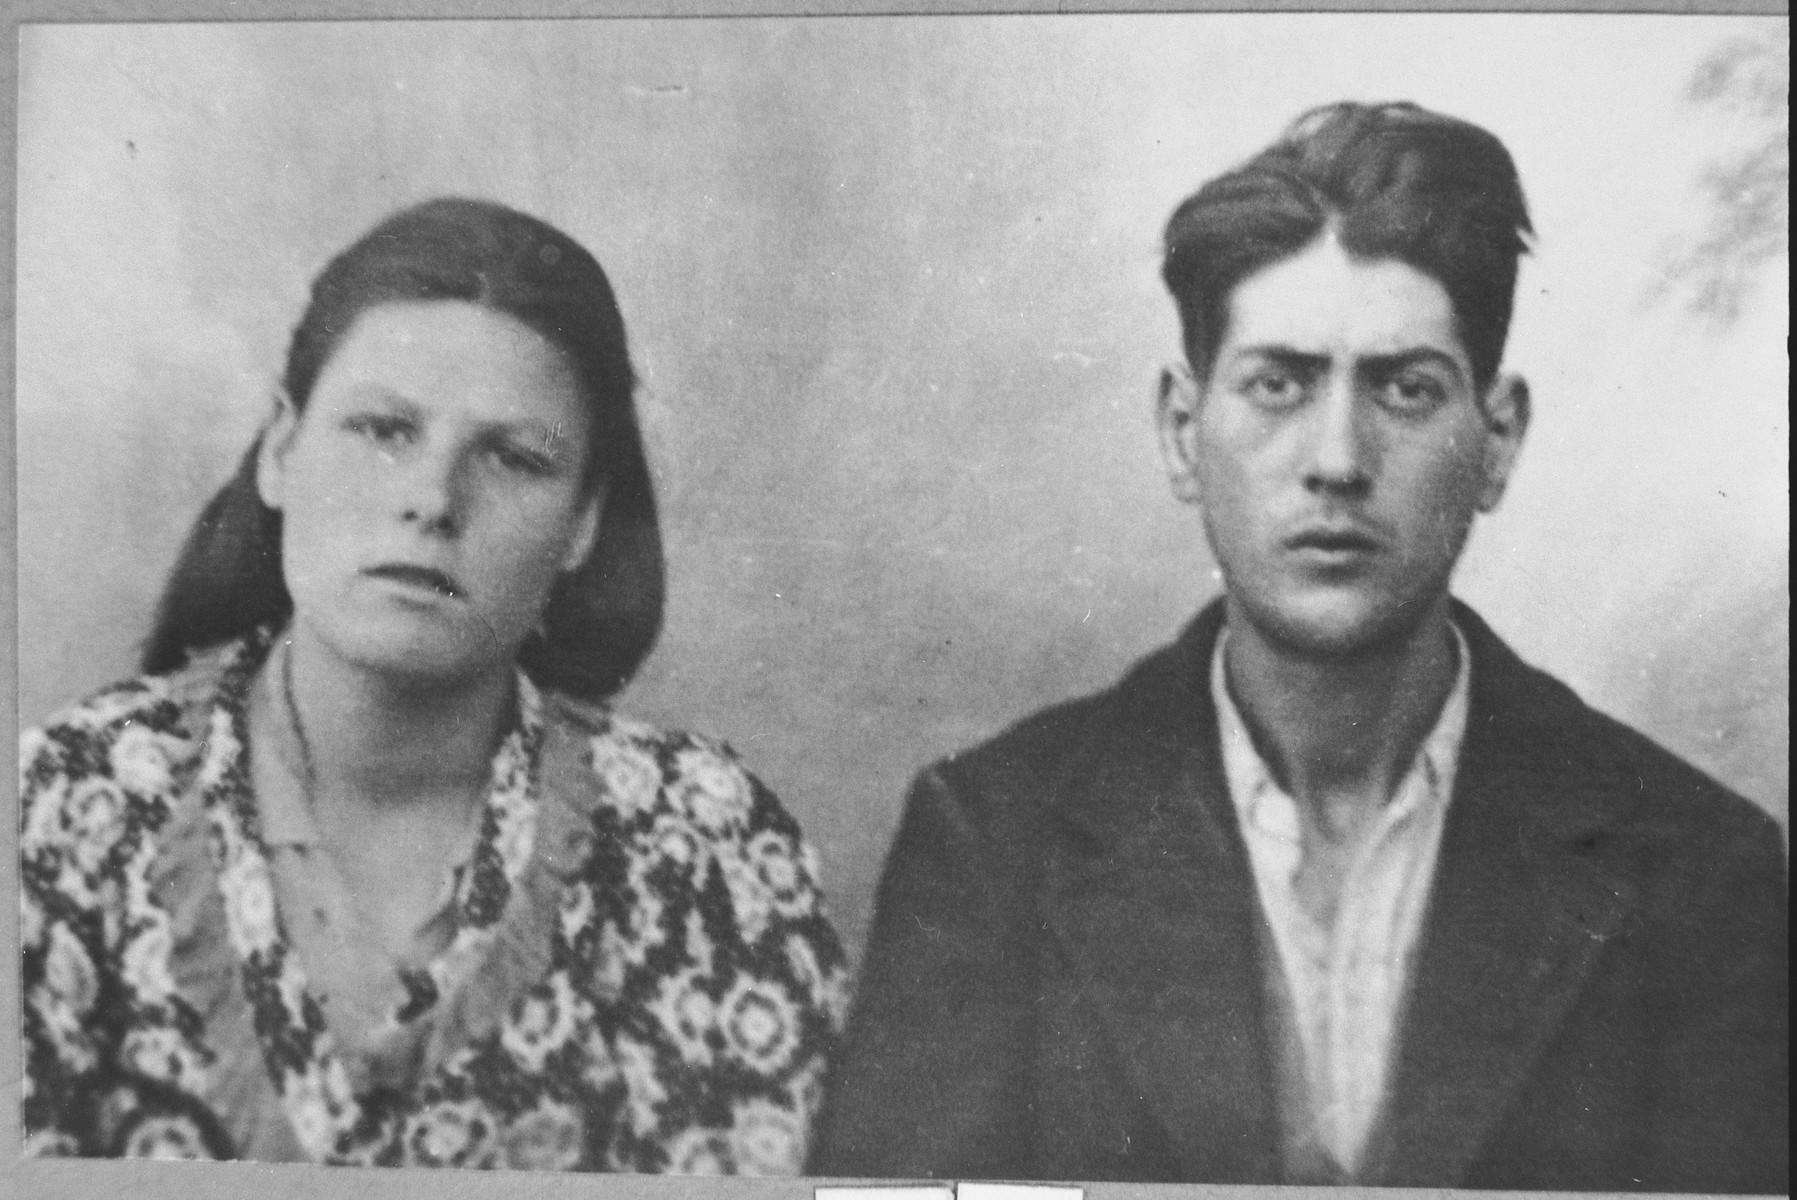 Portrait of Solomon Albocher, son of Yosef Albocher, and his wife, Reina.  Solomon was a greengrocer.  They lived at Gligora 28 in Bitola.